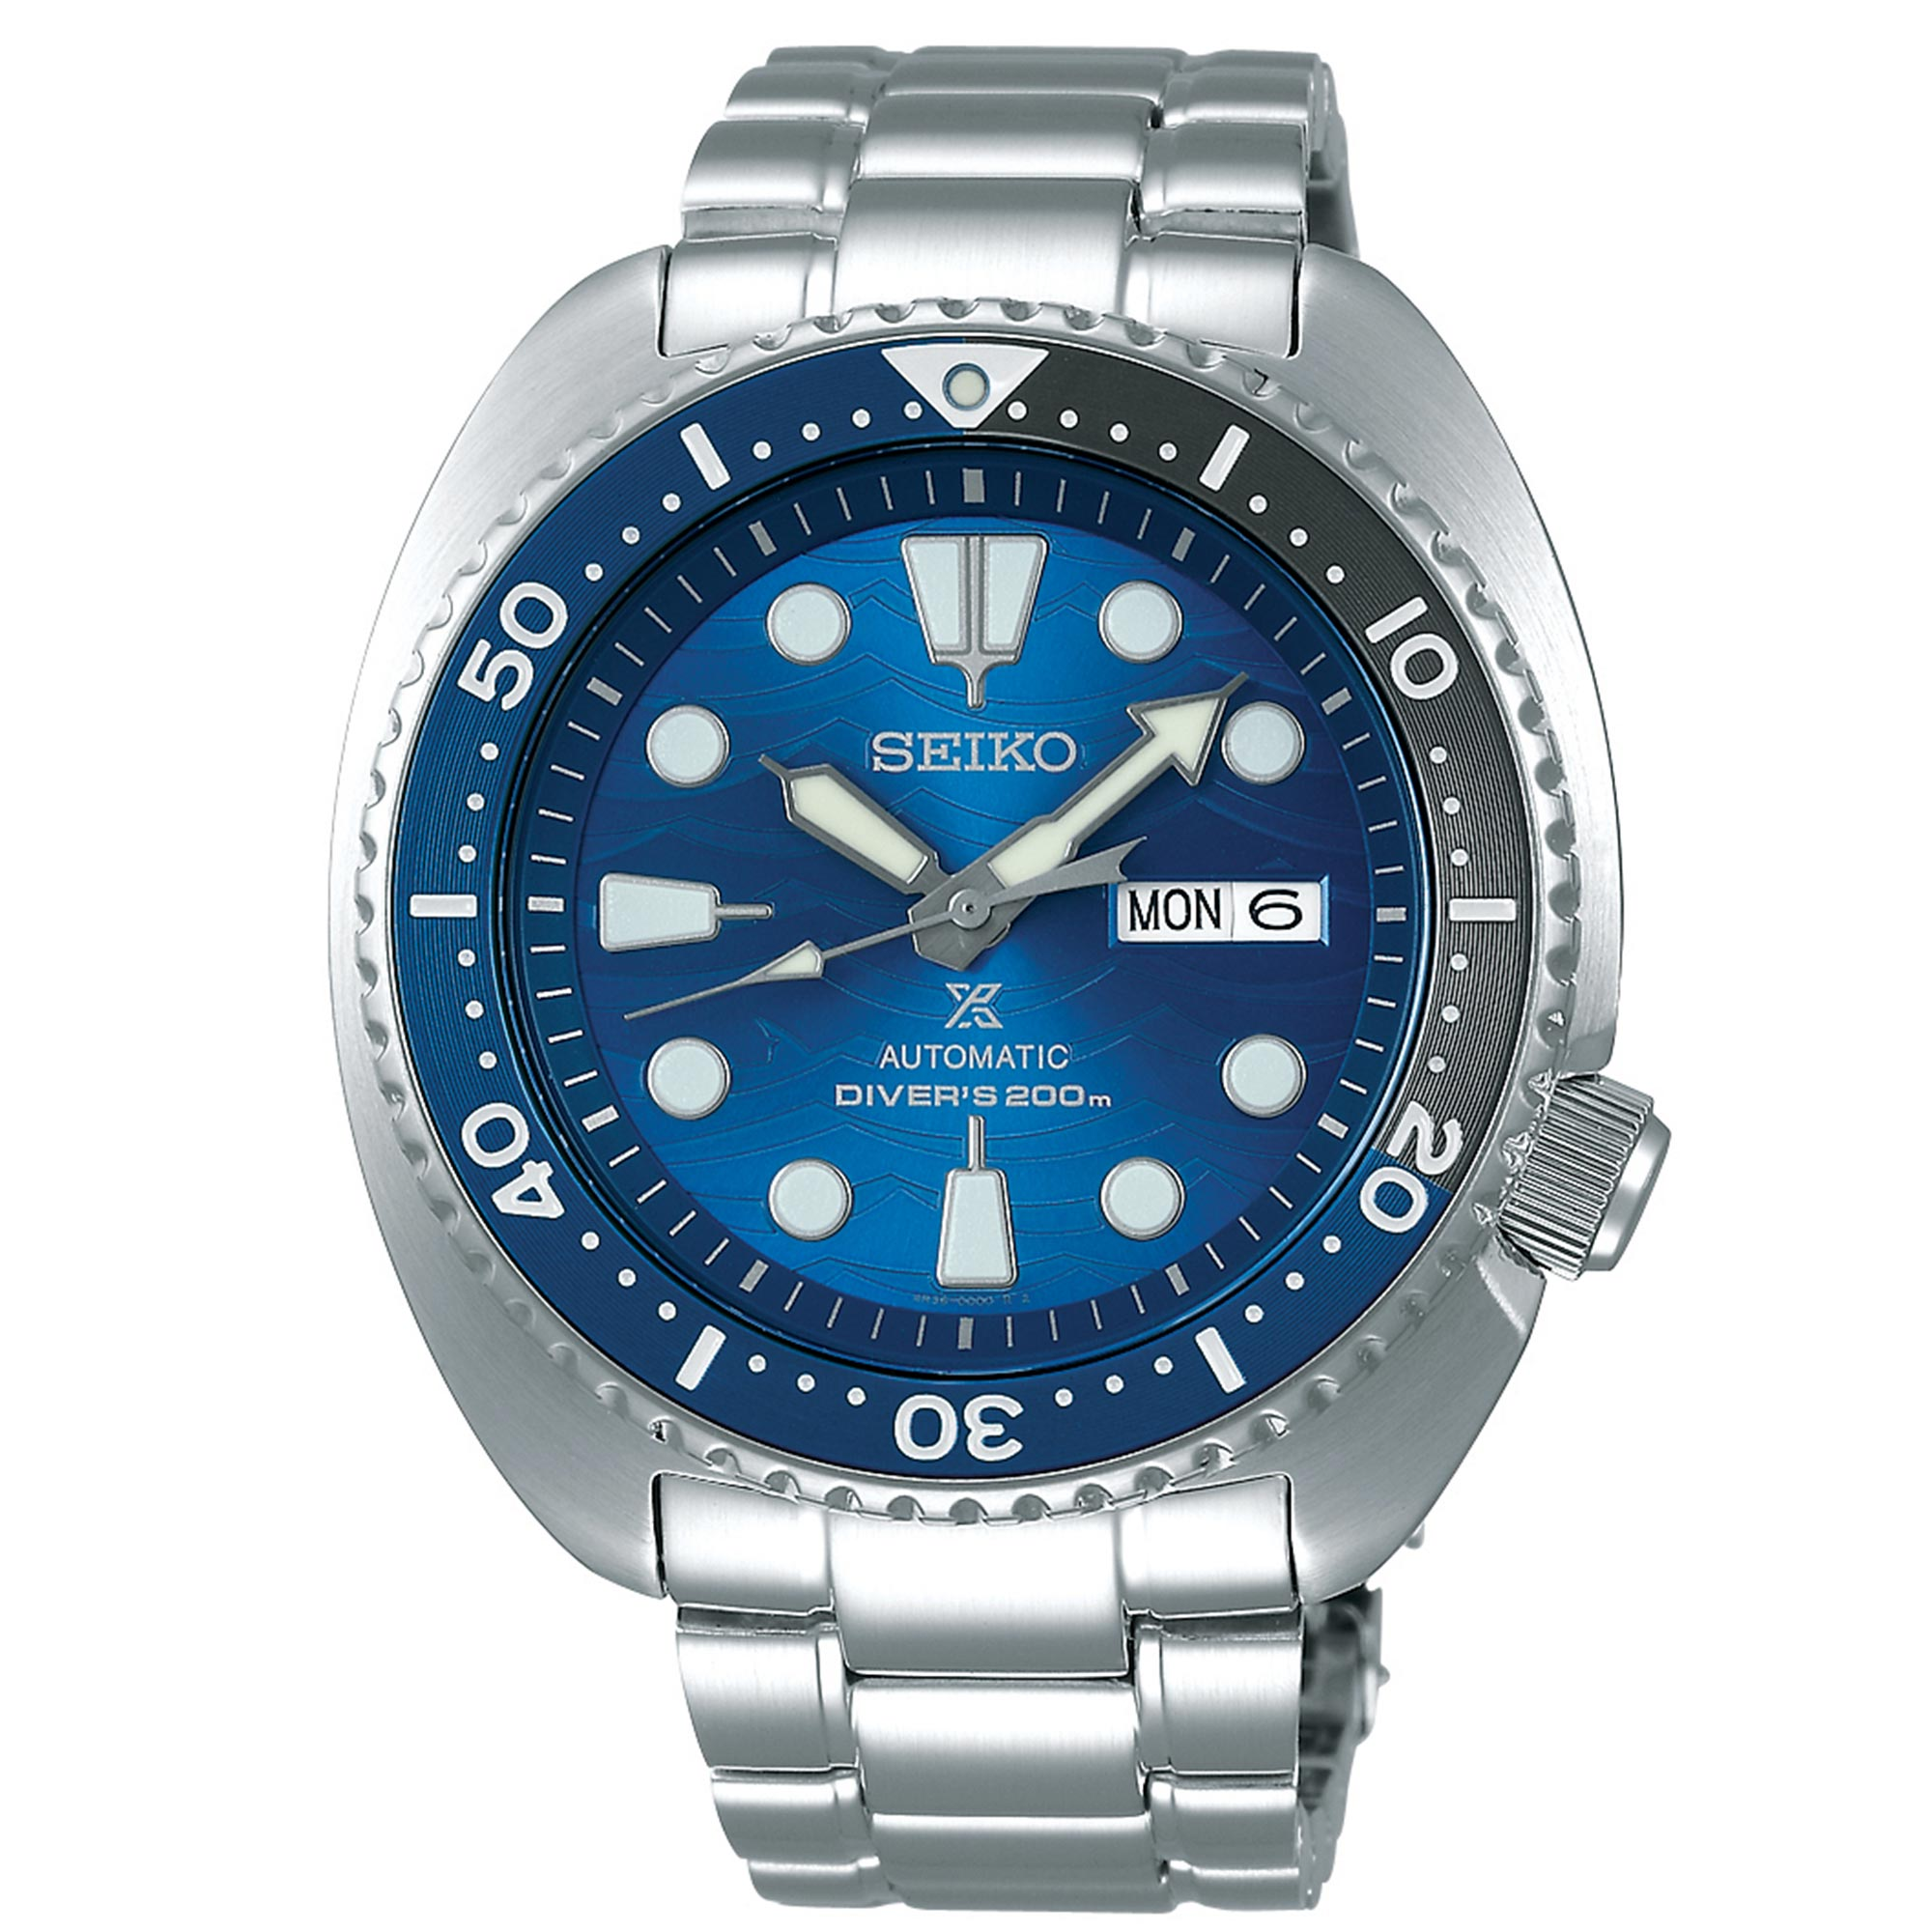 Seiko Special Edition Prospex Save The Ocean 'Great White' Automatic Turtle Blue Dial Silver Stainless Steel Men's Watch SRPD21K1 RRP £430